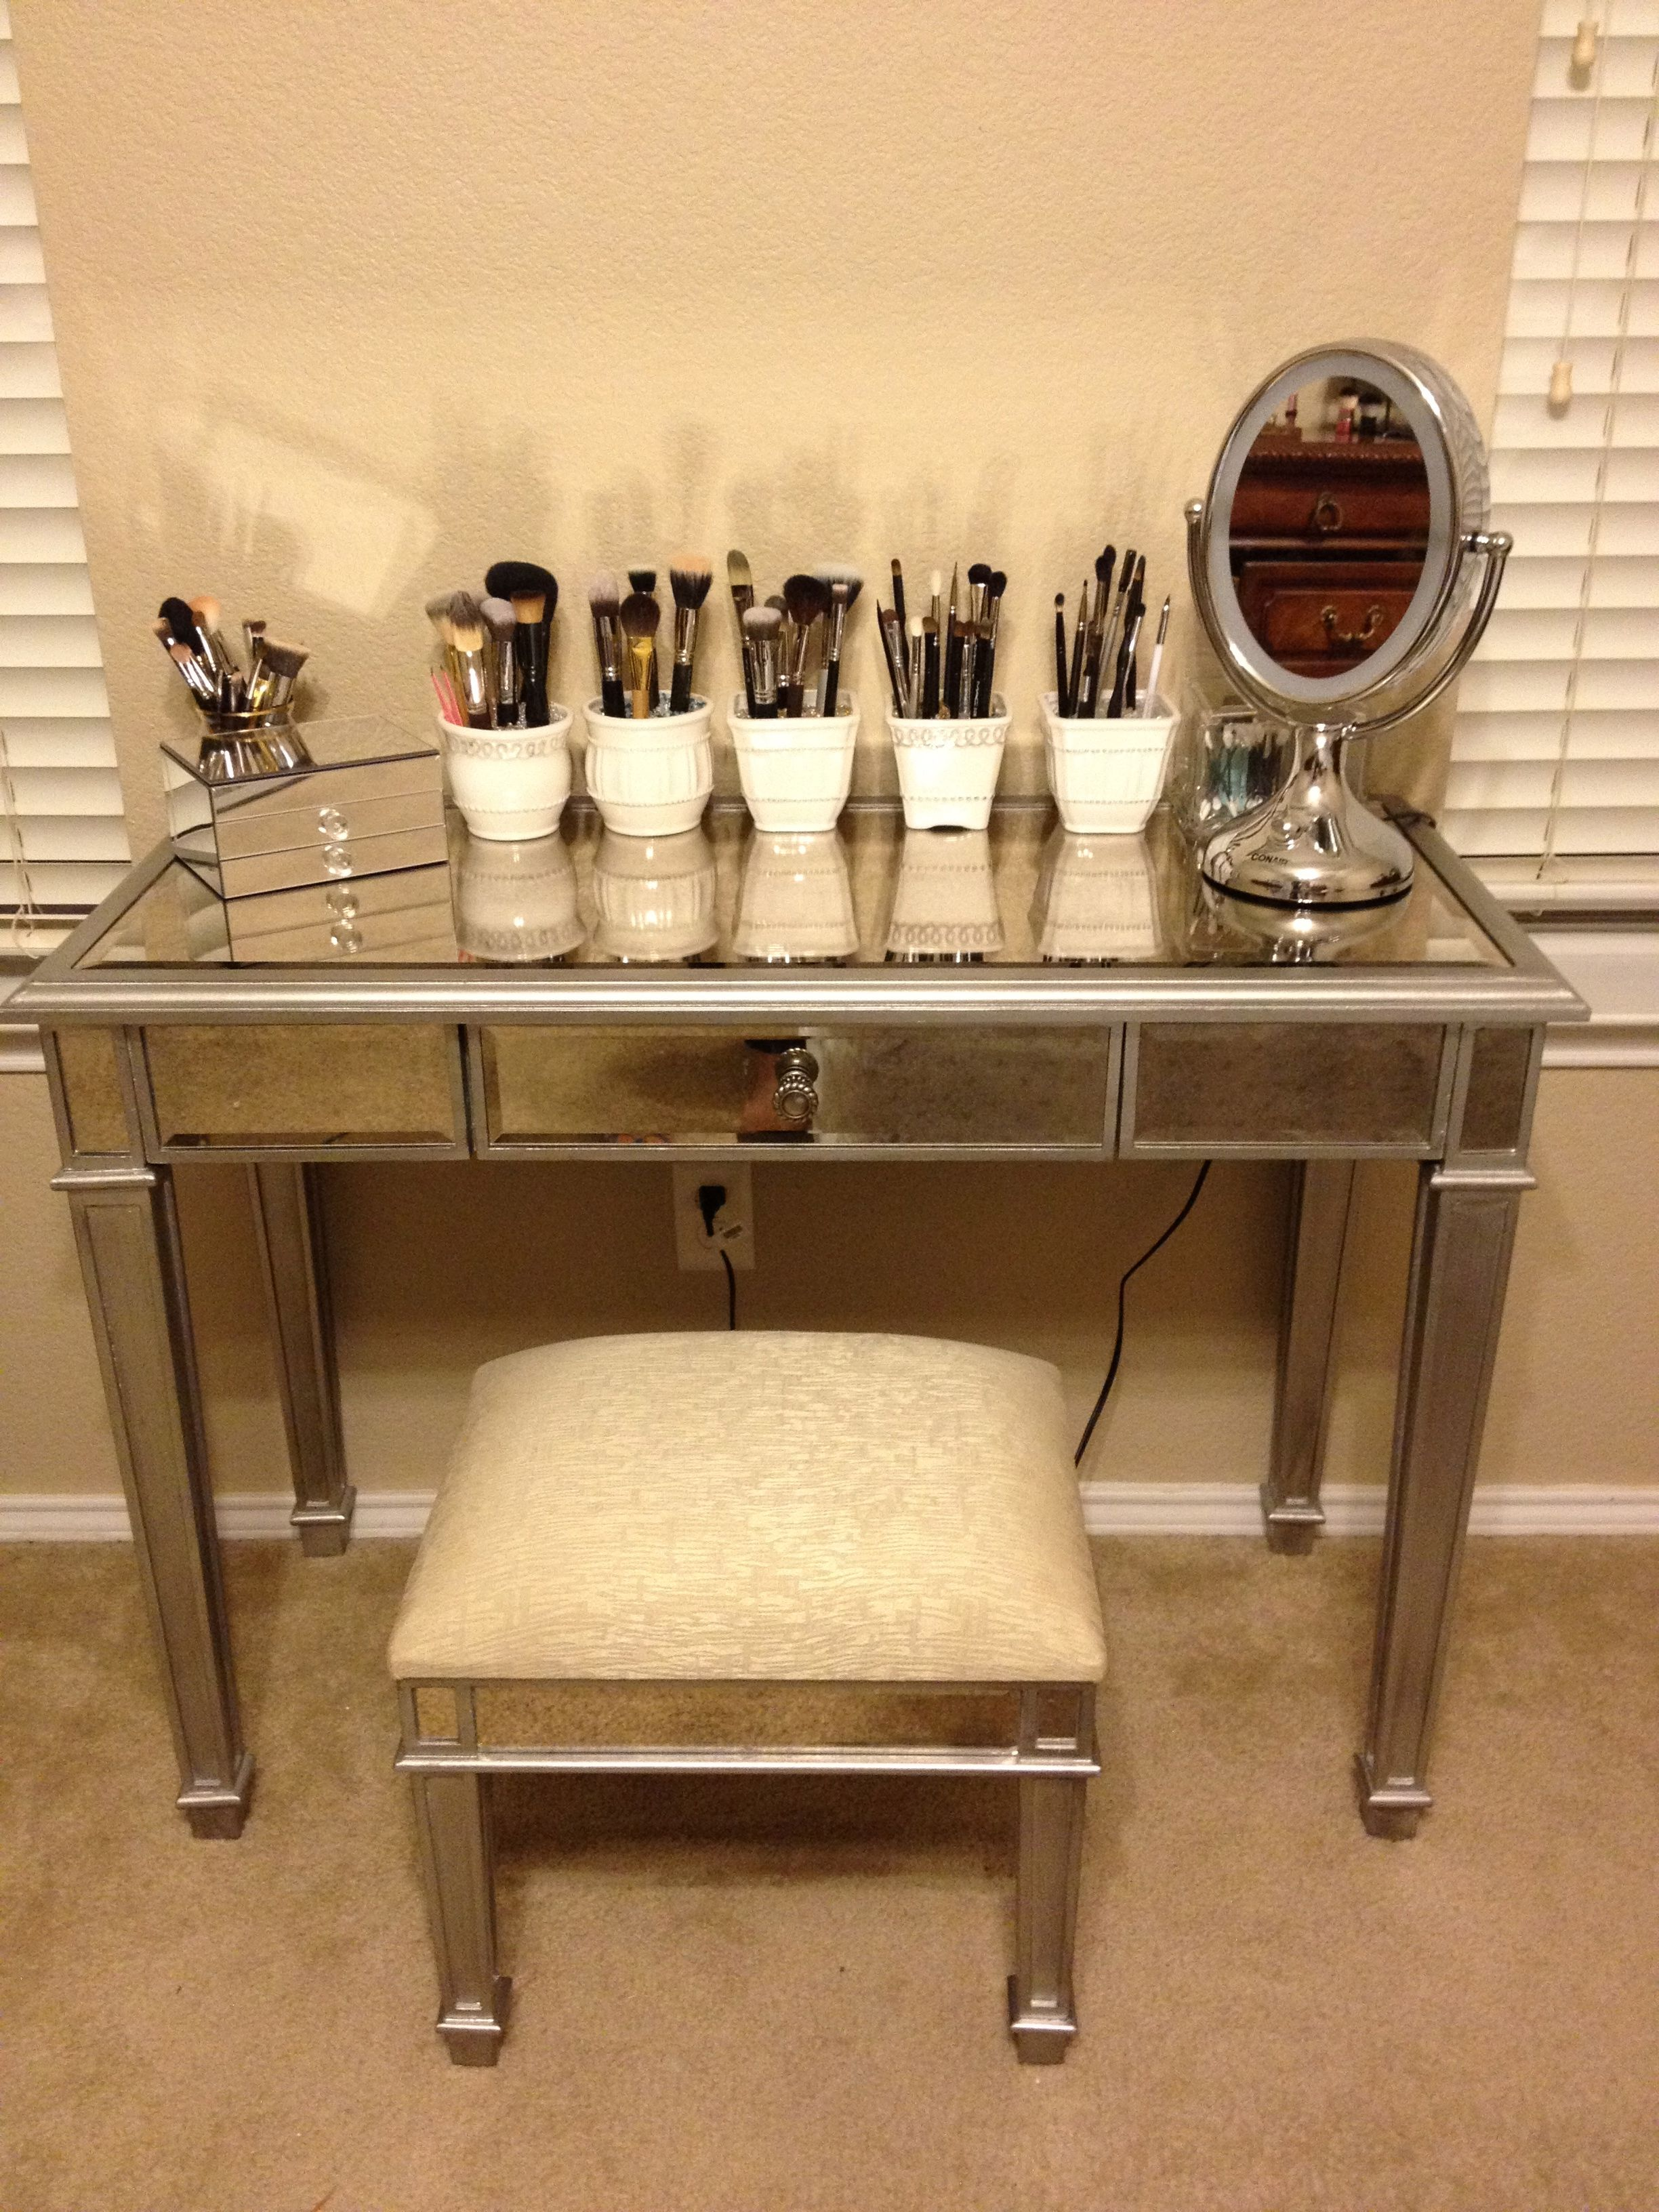 Hayworth Vanity From Pier1 Vanity Design Mirrored Dresser